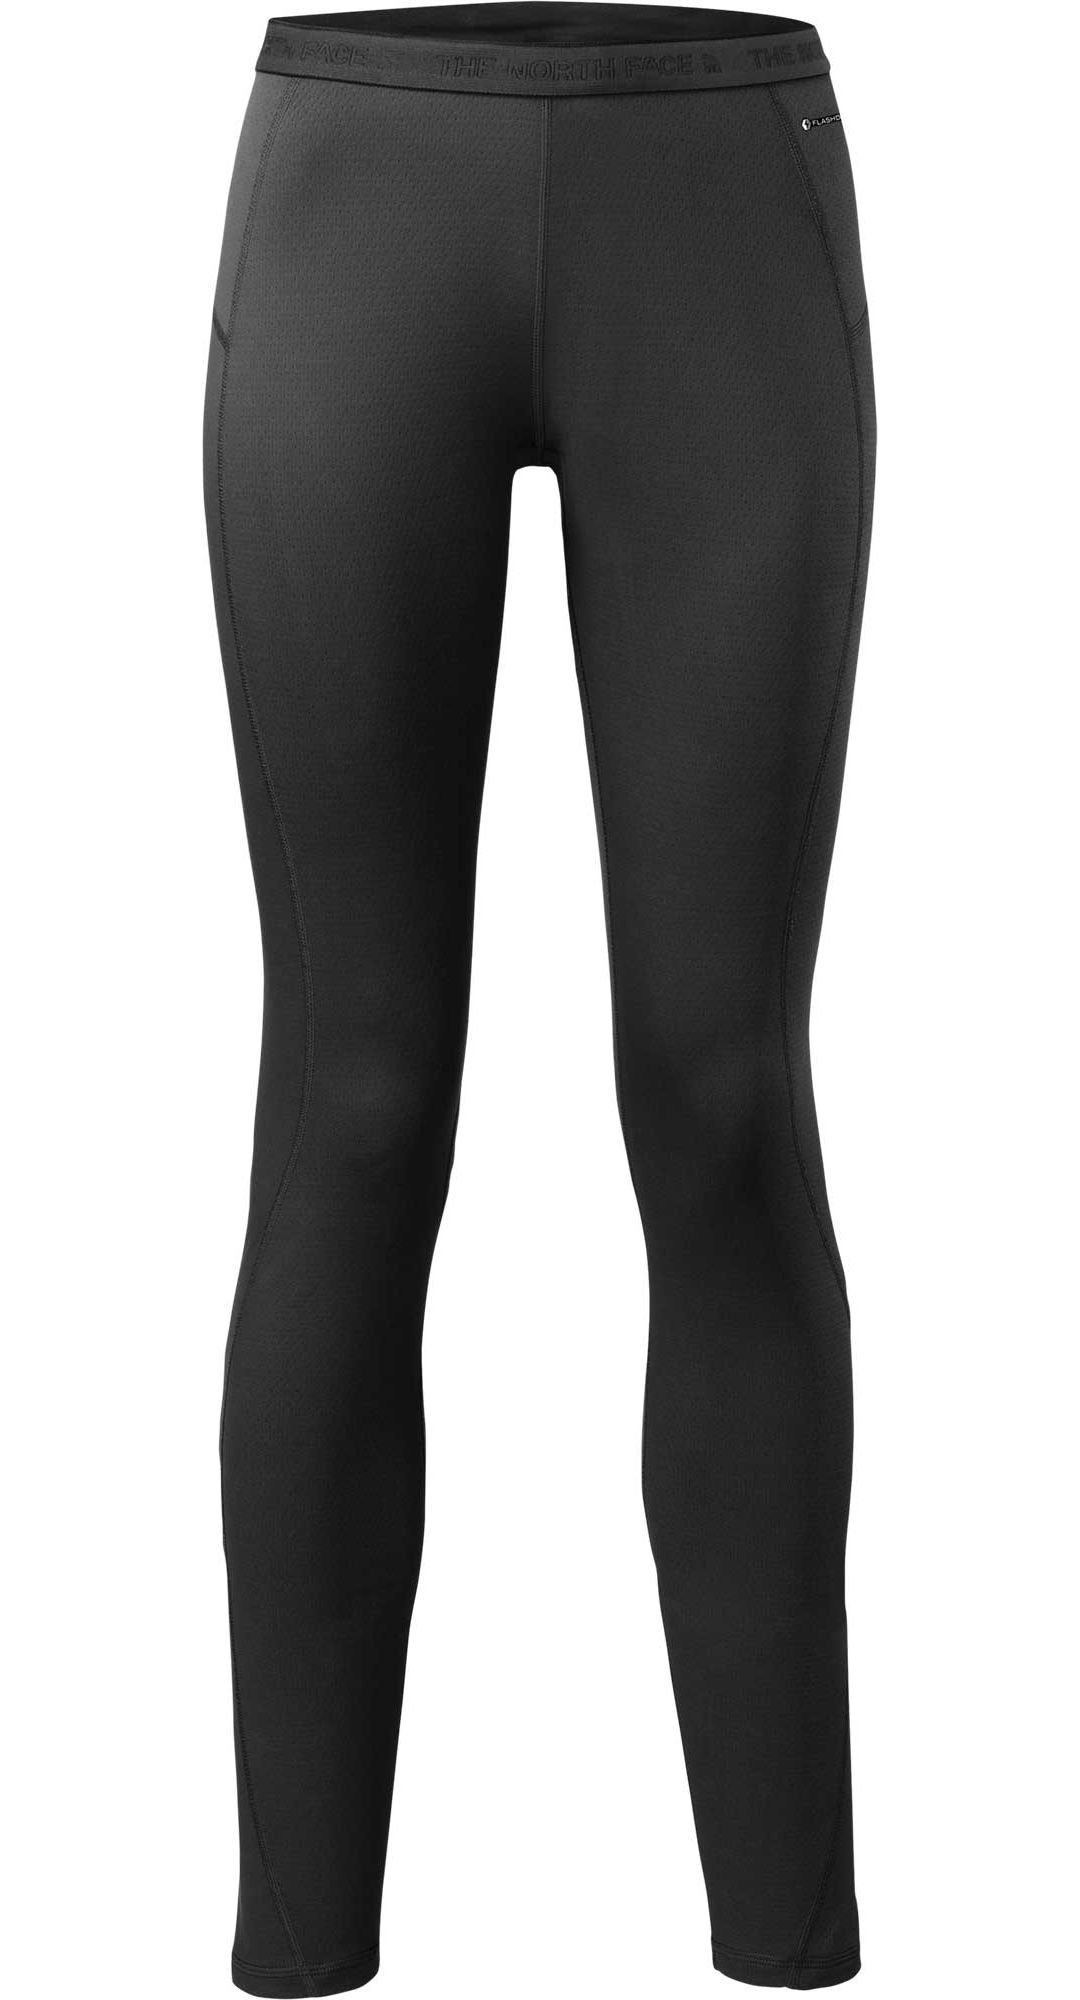 2c181d589 The North Face Women's Warm Baselayer Tights